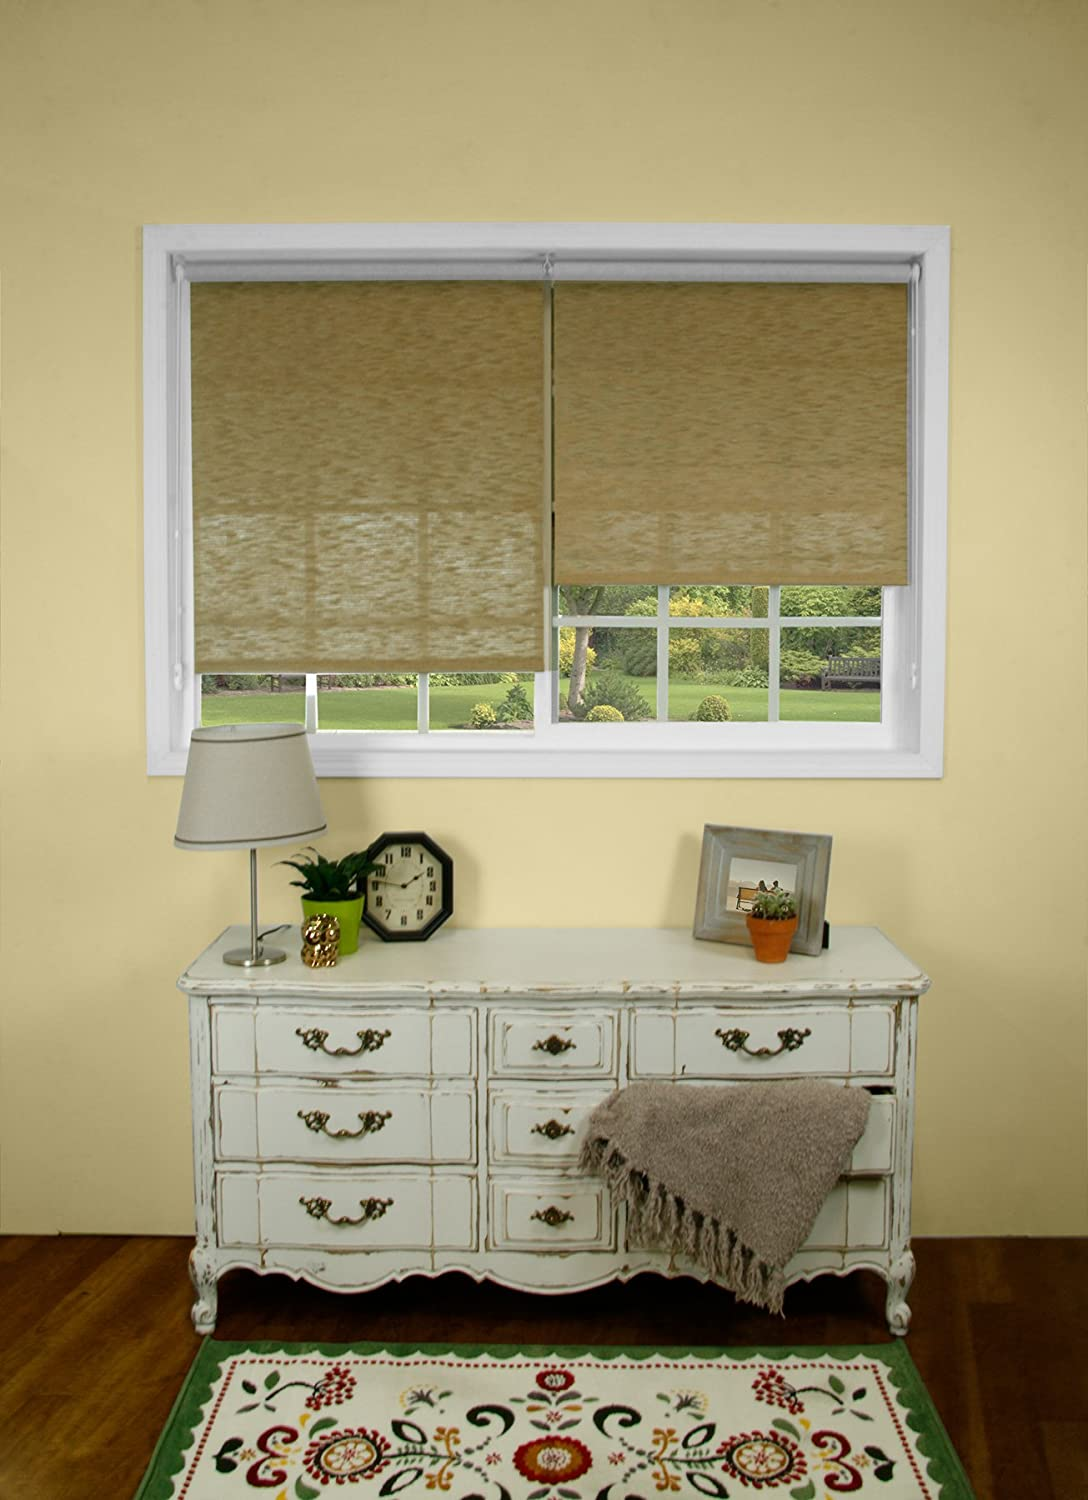 Solar RSCMB2472 CHICOLOGY Continuous Loop Beaded Chain Roller Shades UV Ray Blocking Window Blind 24 W X 72 H Midnight Black